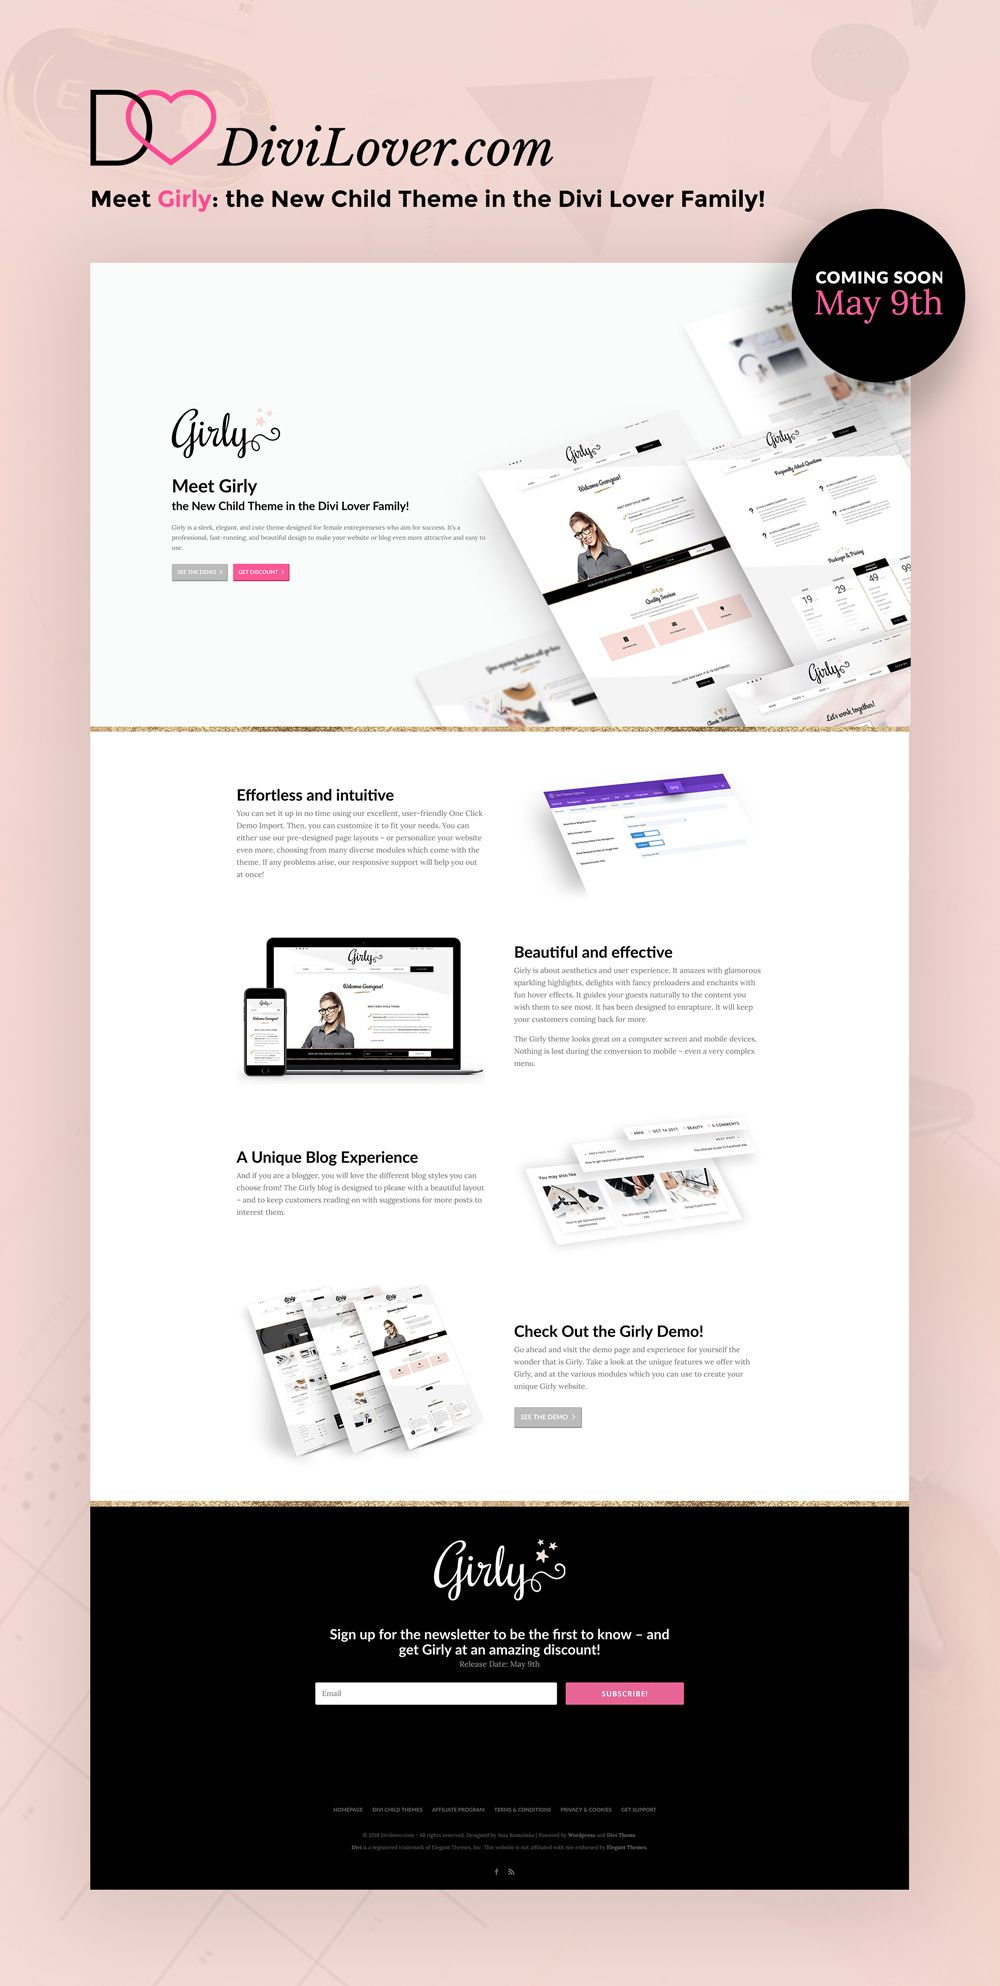 Girly B3 Multimedia Solutions Girly Web Design Cute Themes